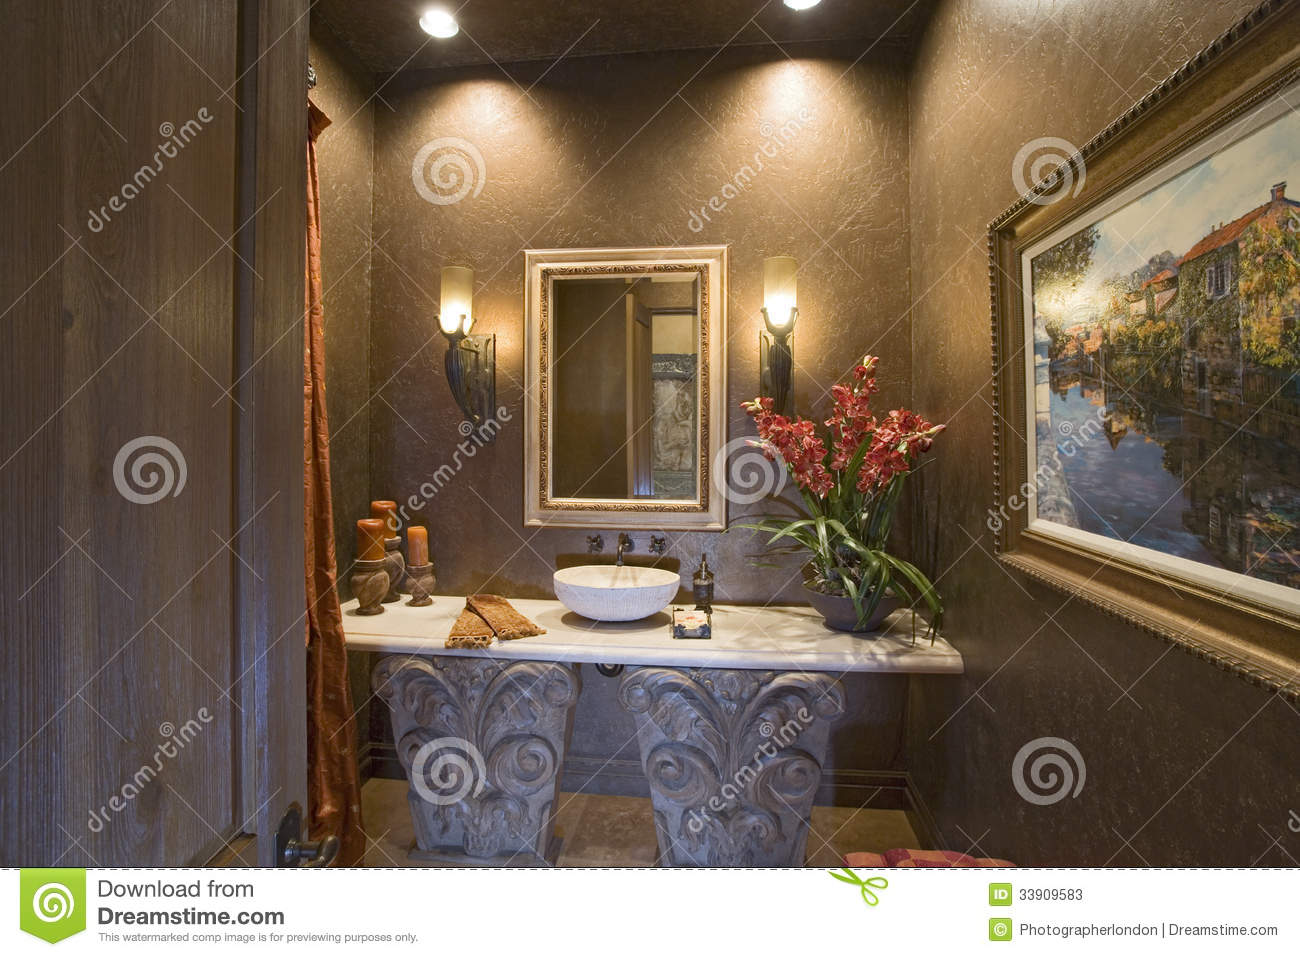 Sconces And Mirror Over Bathroom Sink Stock Photos - Image: 33909583